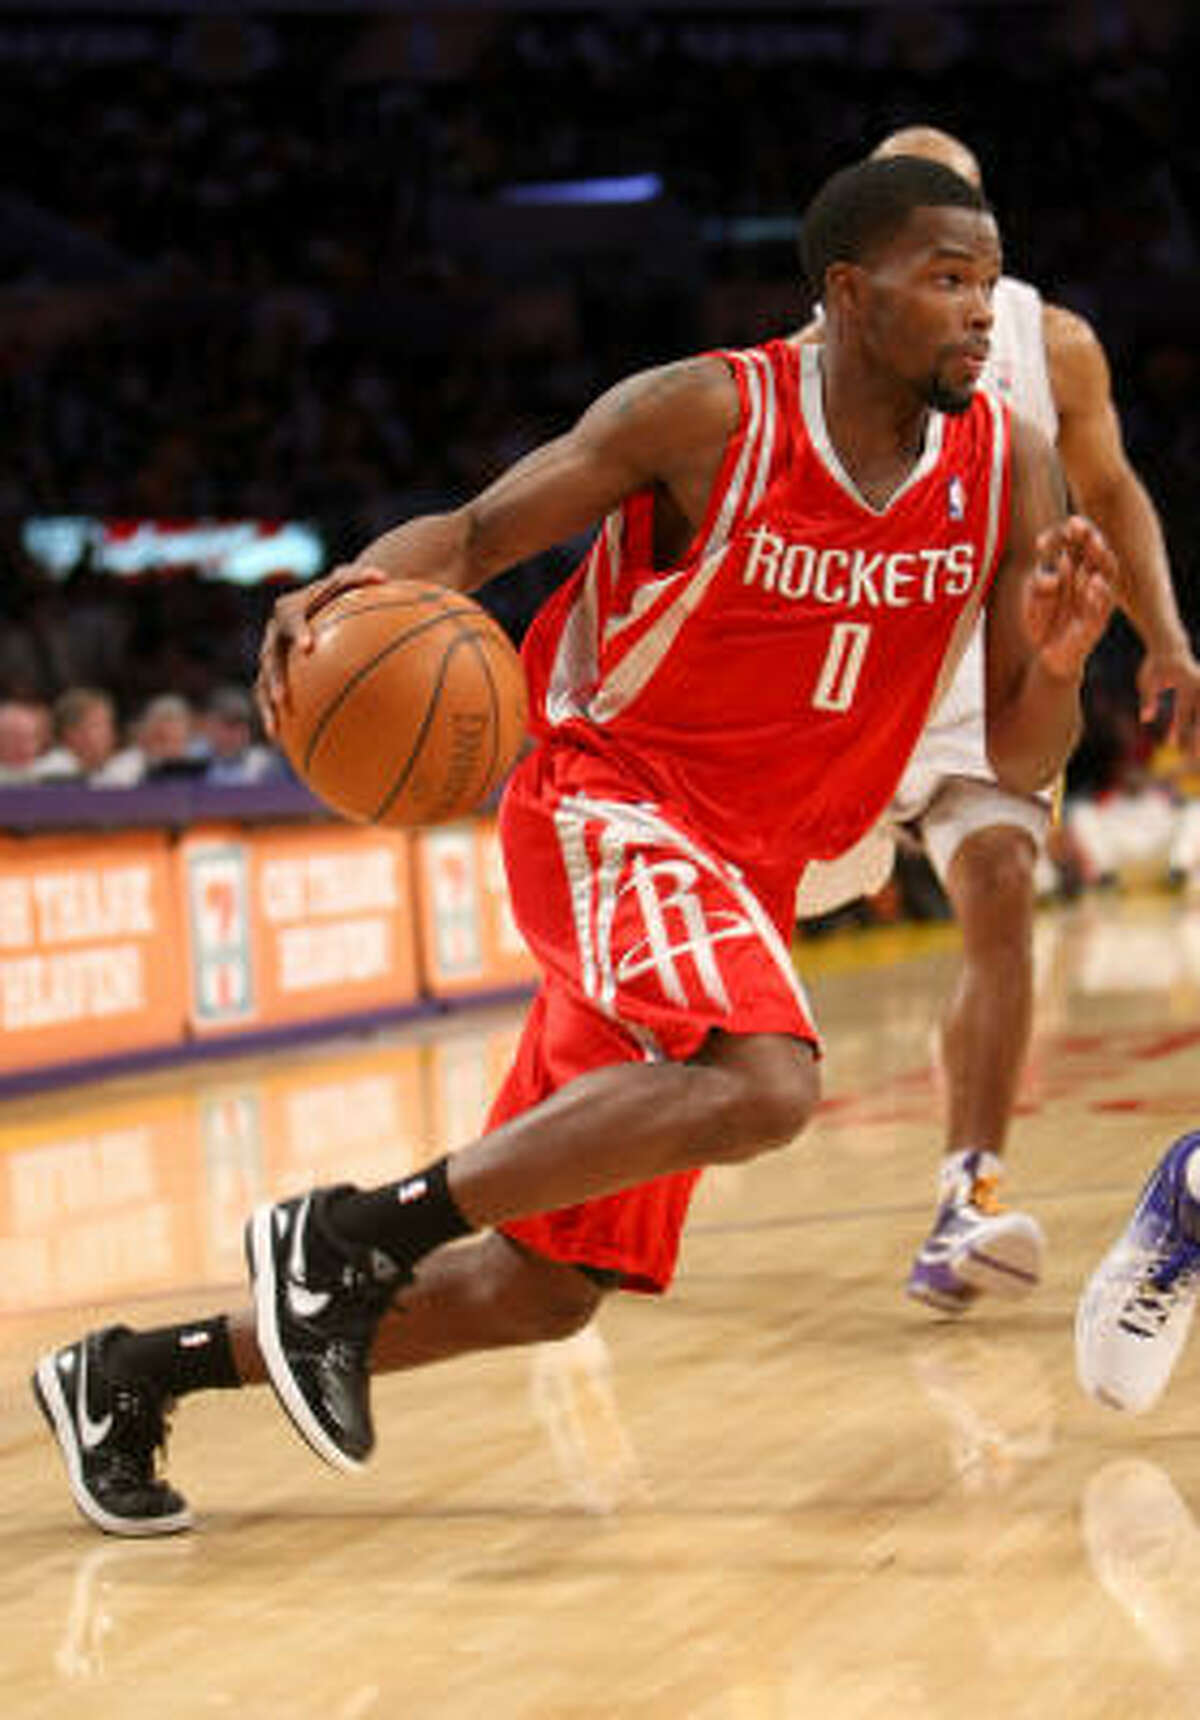 Rockets guard Aaron Brooks scored a career-high 33 points to lead the Rockets to a 101-91 win over the Los Angeles Lakers on Sunday night in Los Angeles.